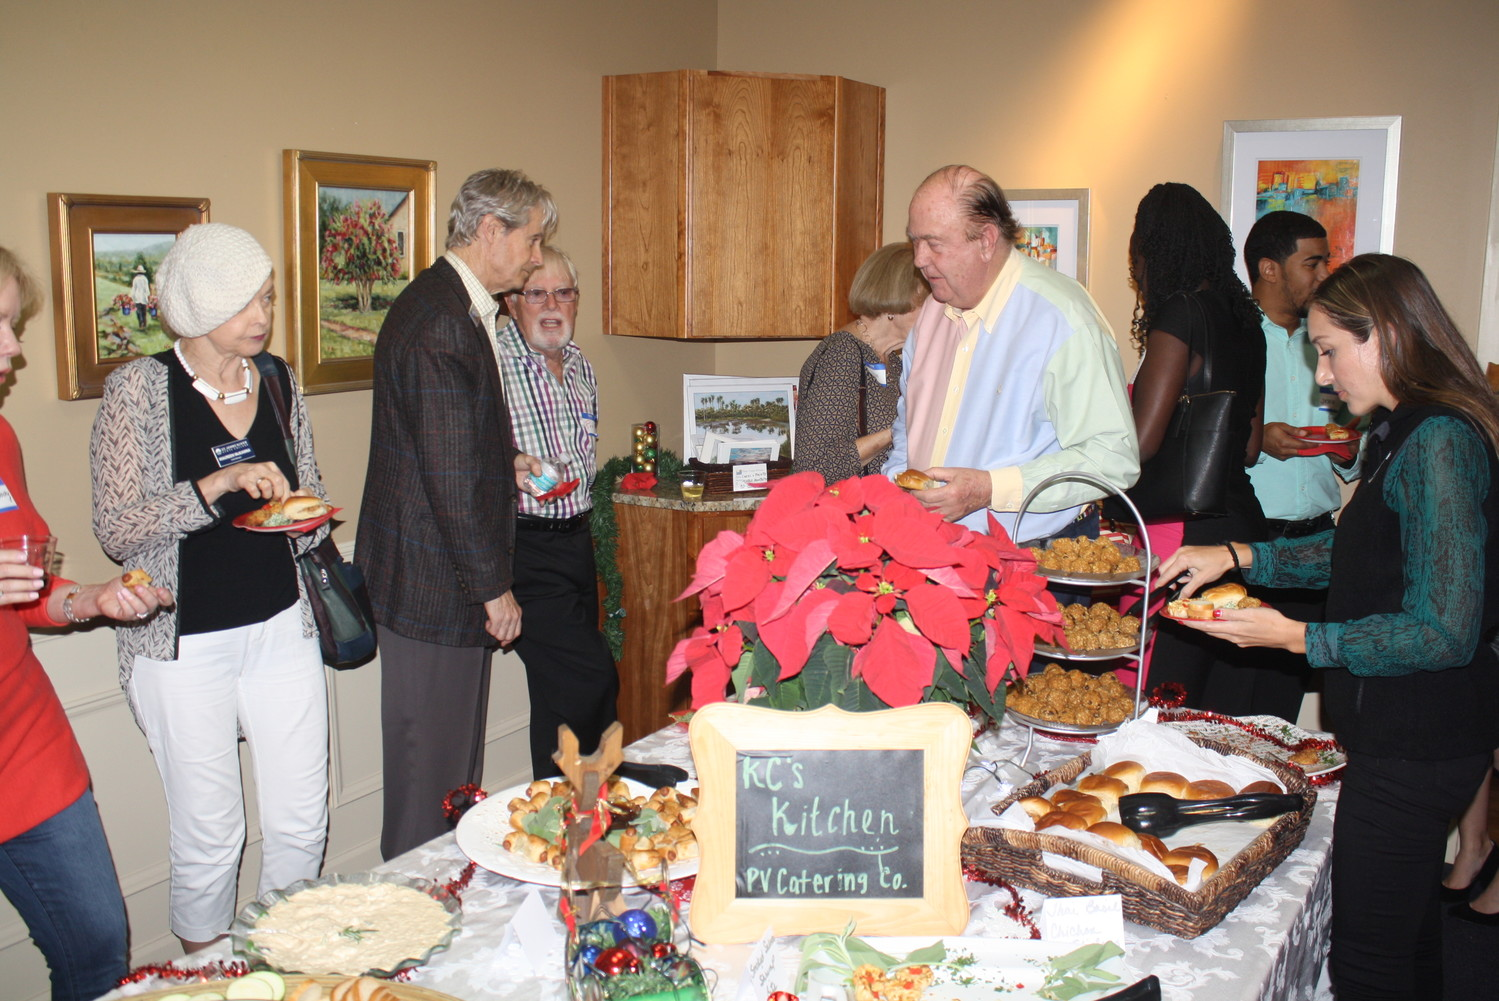 Event guests enjoy food from KC's Kitchen.